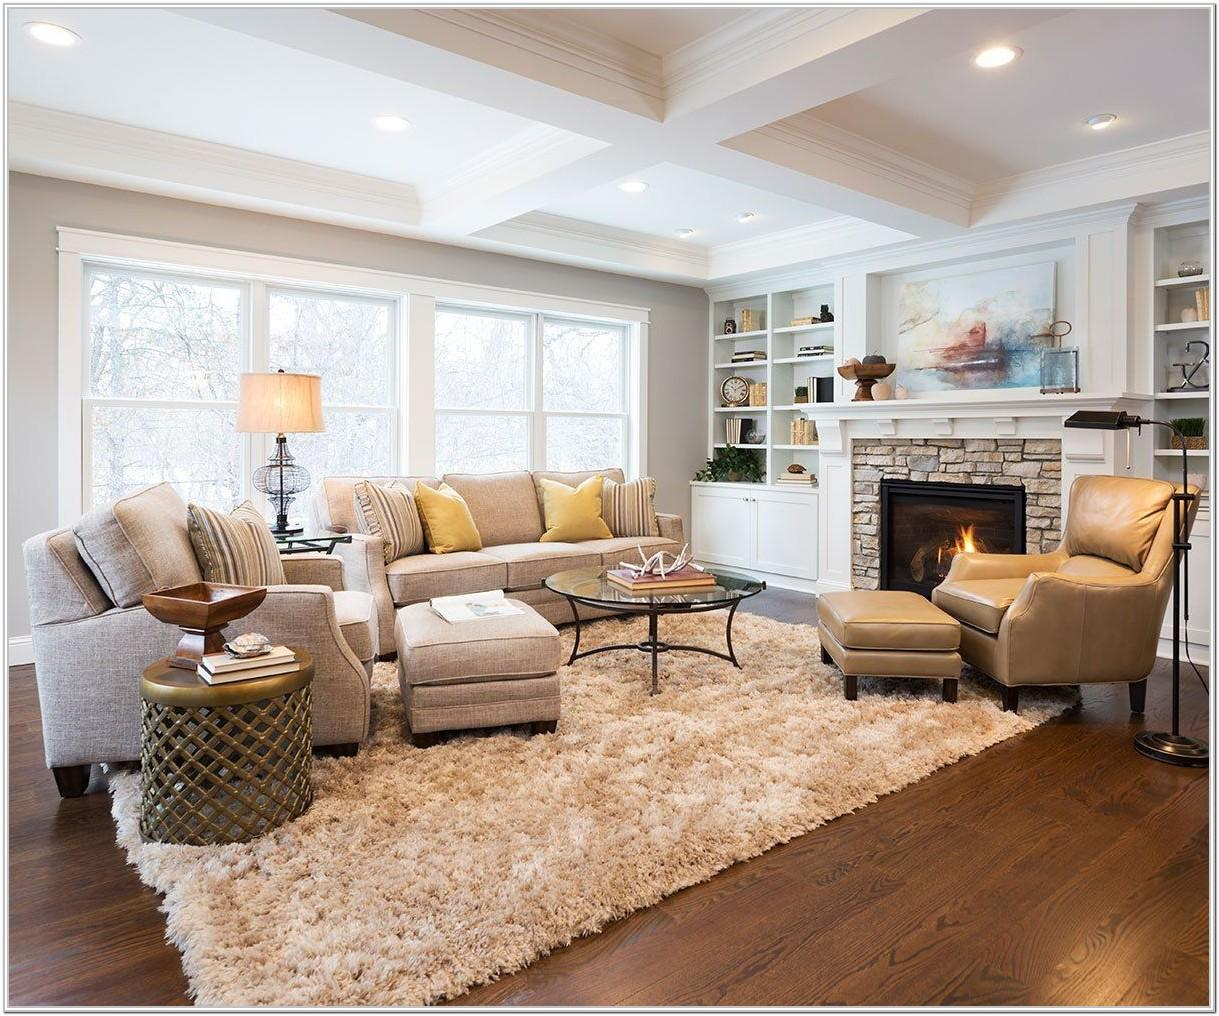 Living Room Furniture Arrangement Examples With Fireplace